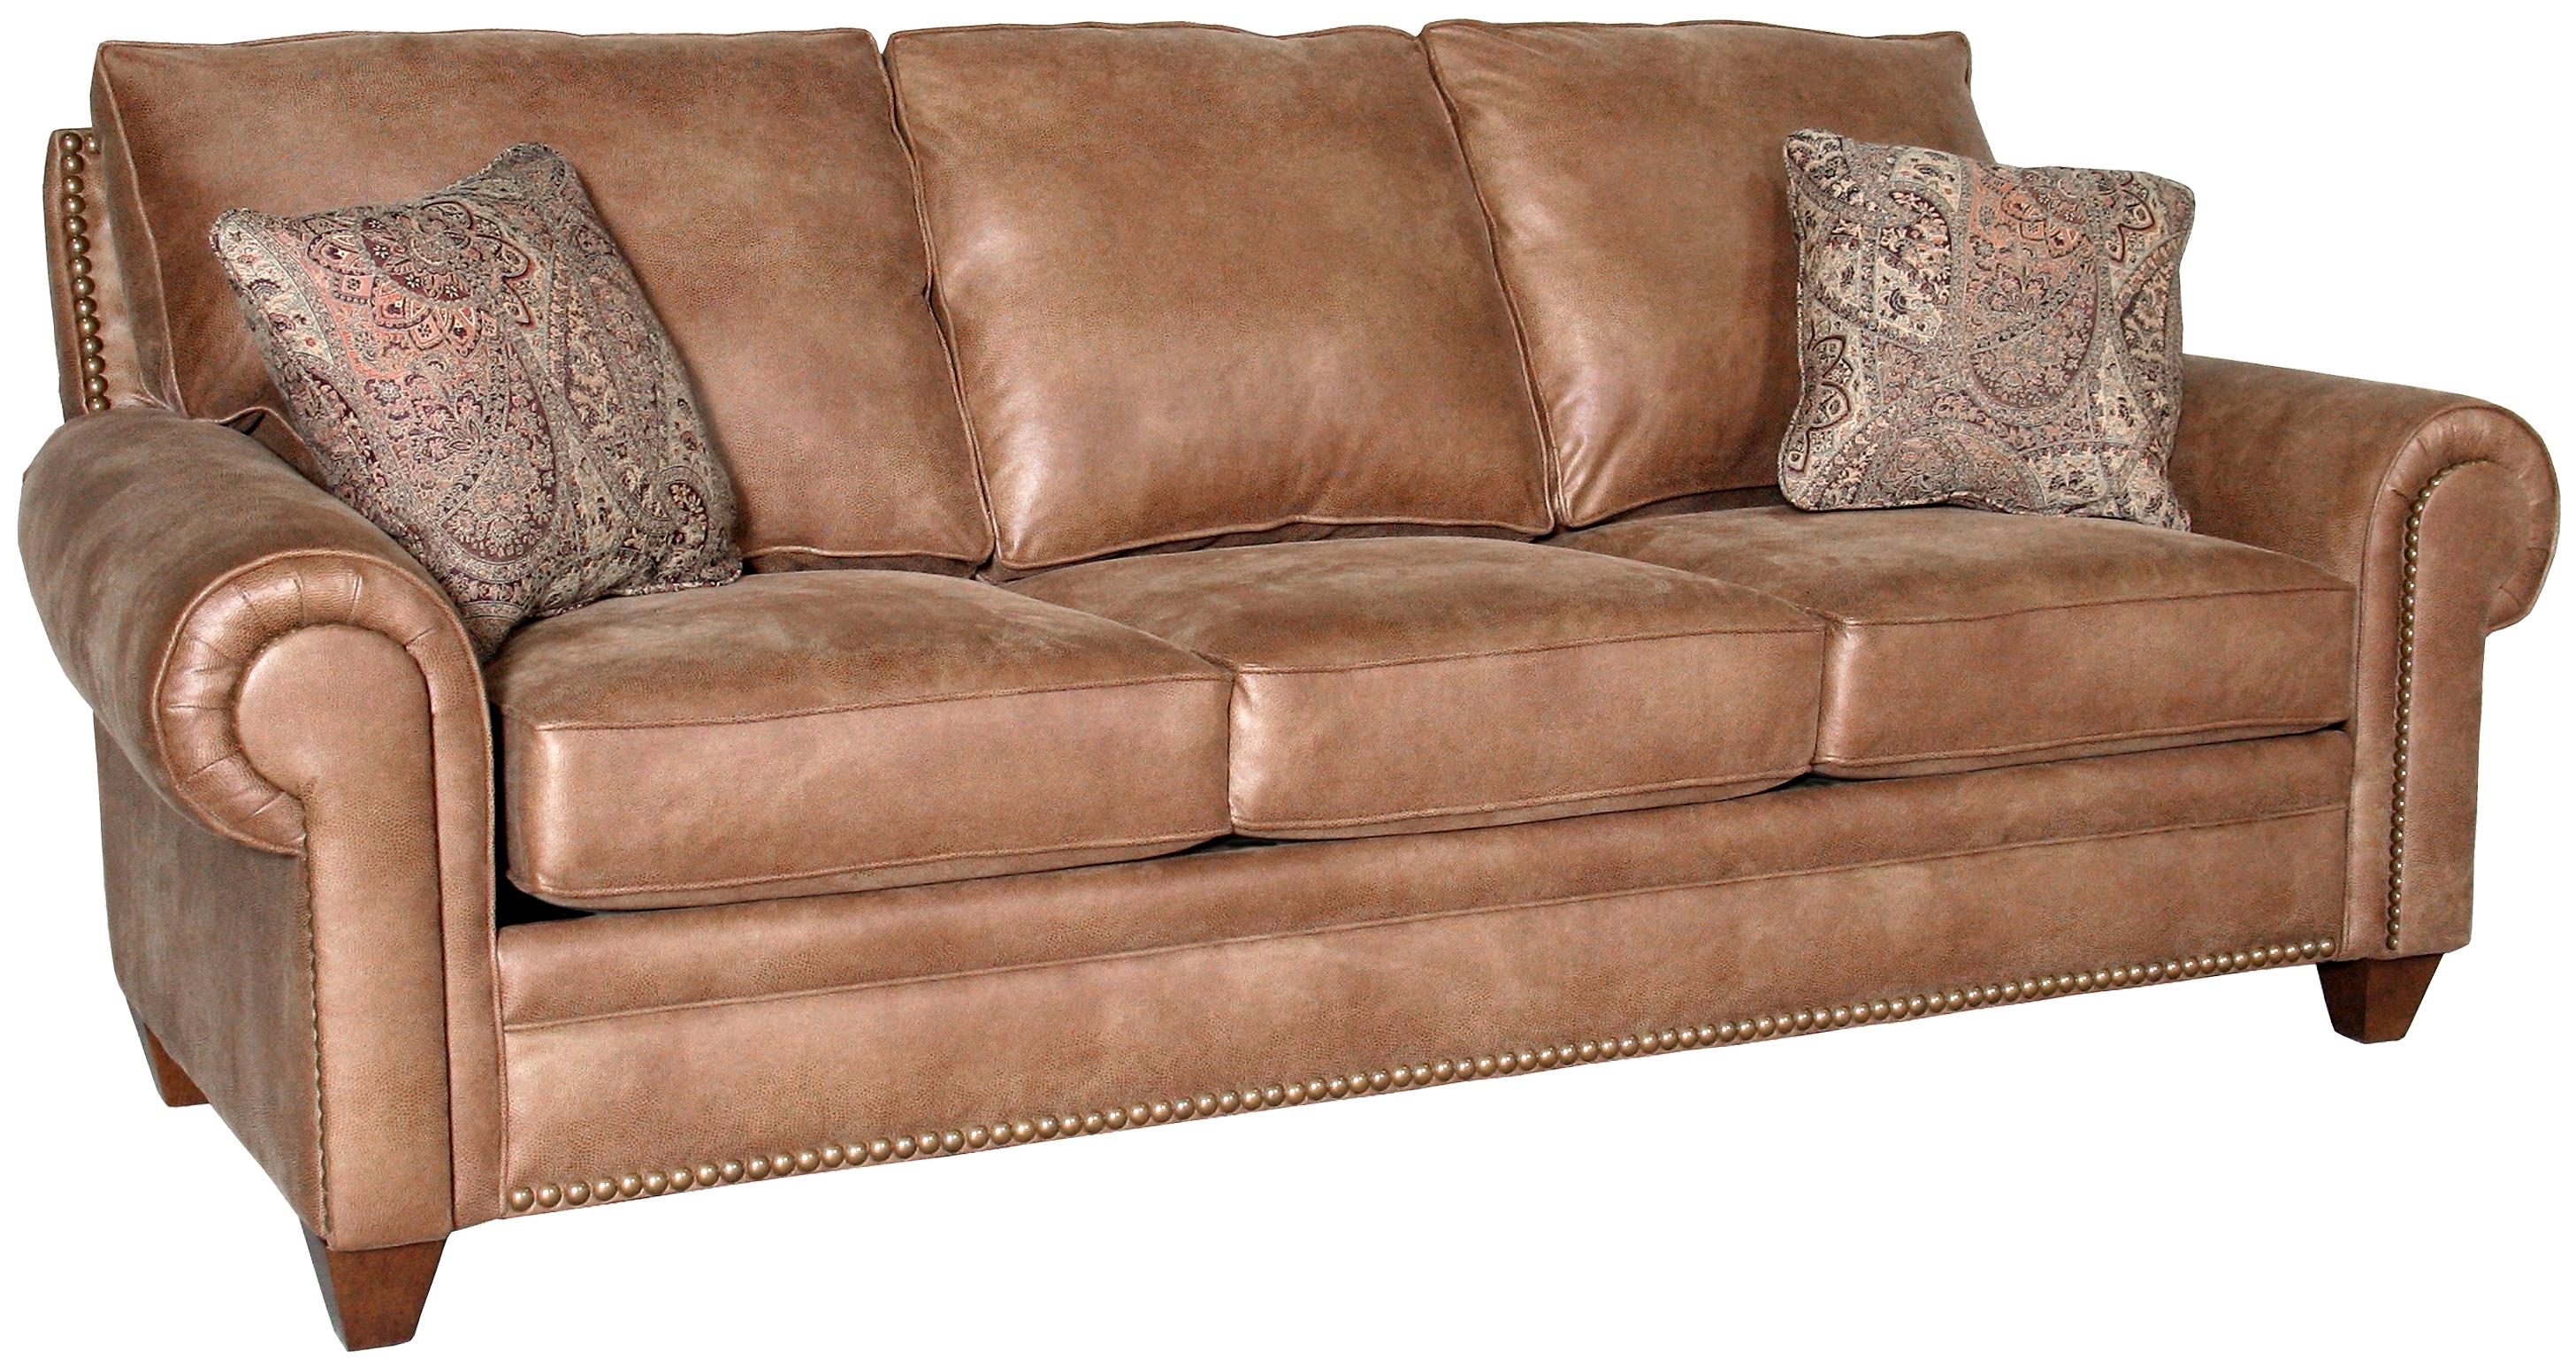 Mayo 2840 traditional stationary sofa with tapered legs for Traditional sofas with legs